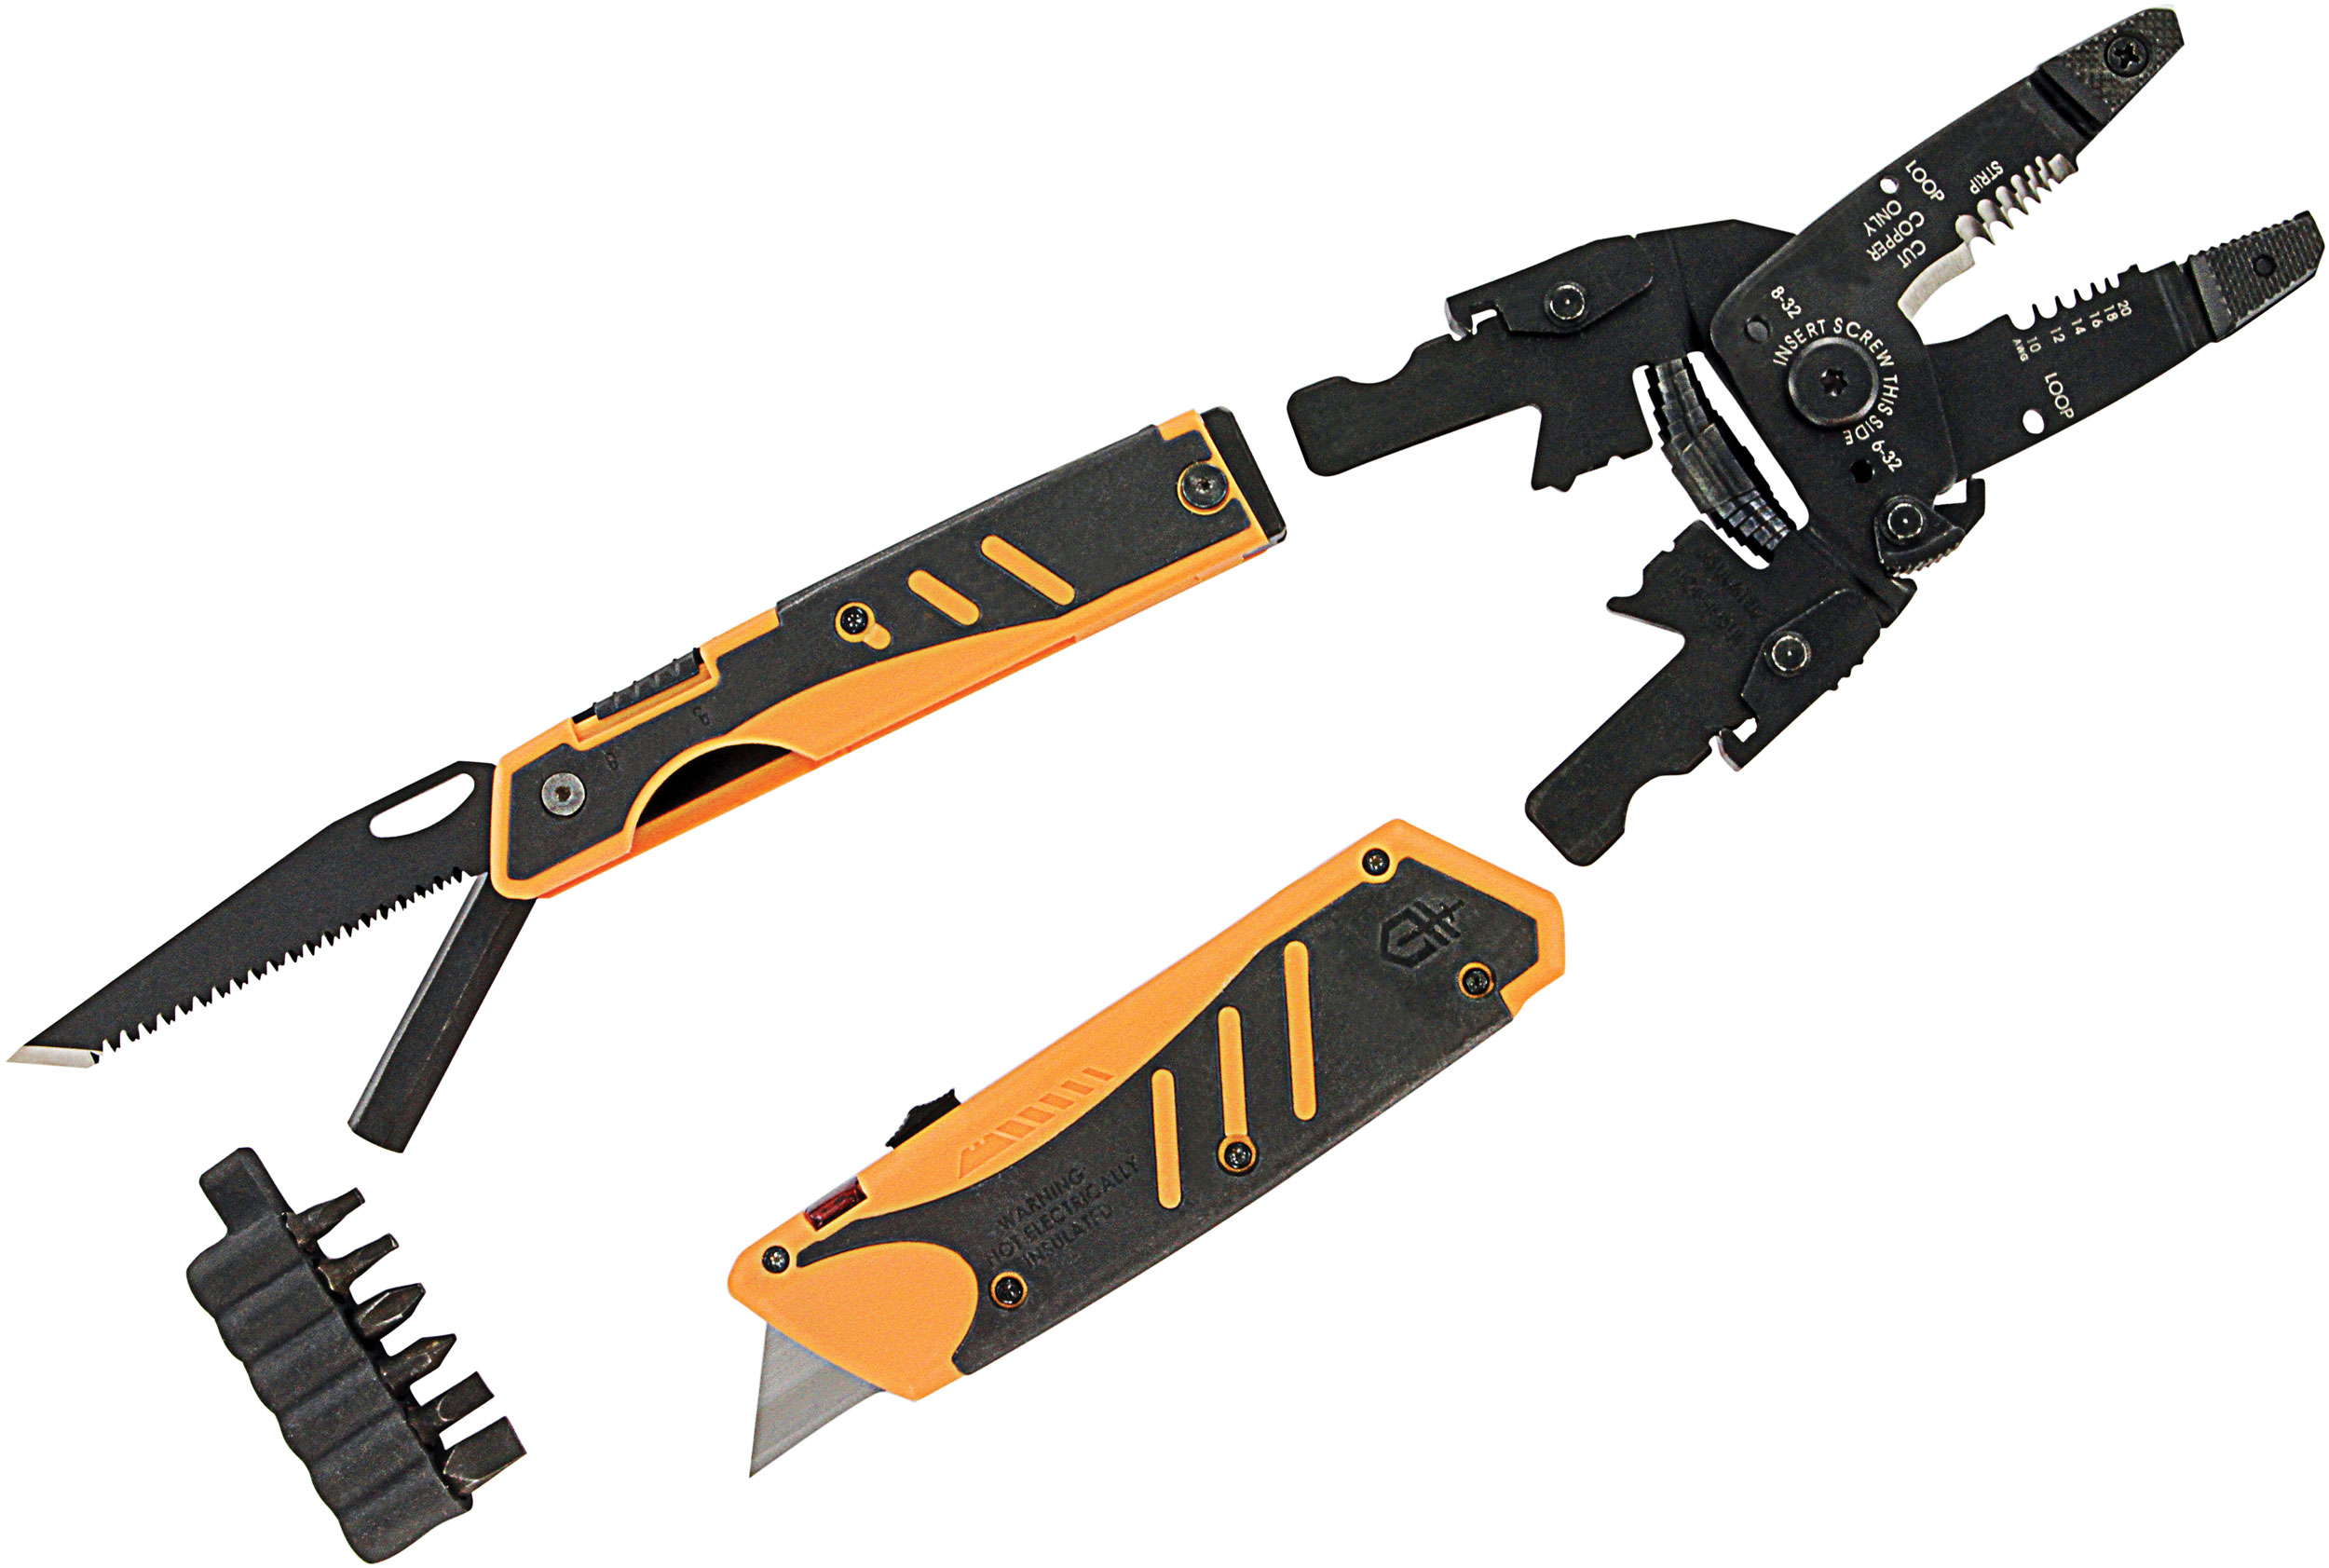 Buy Electricians Multitools at KnifeCenter